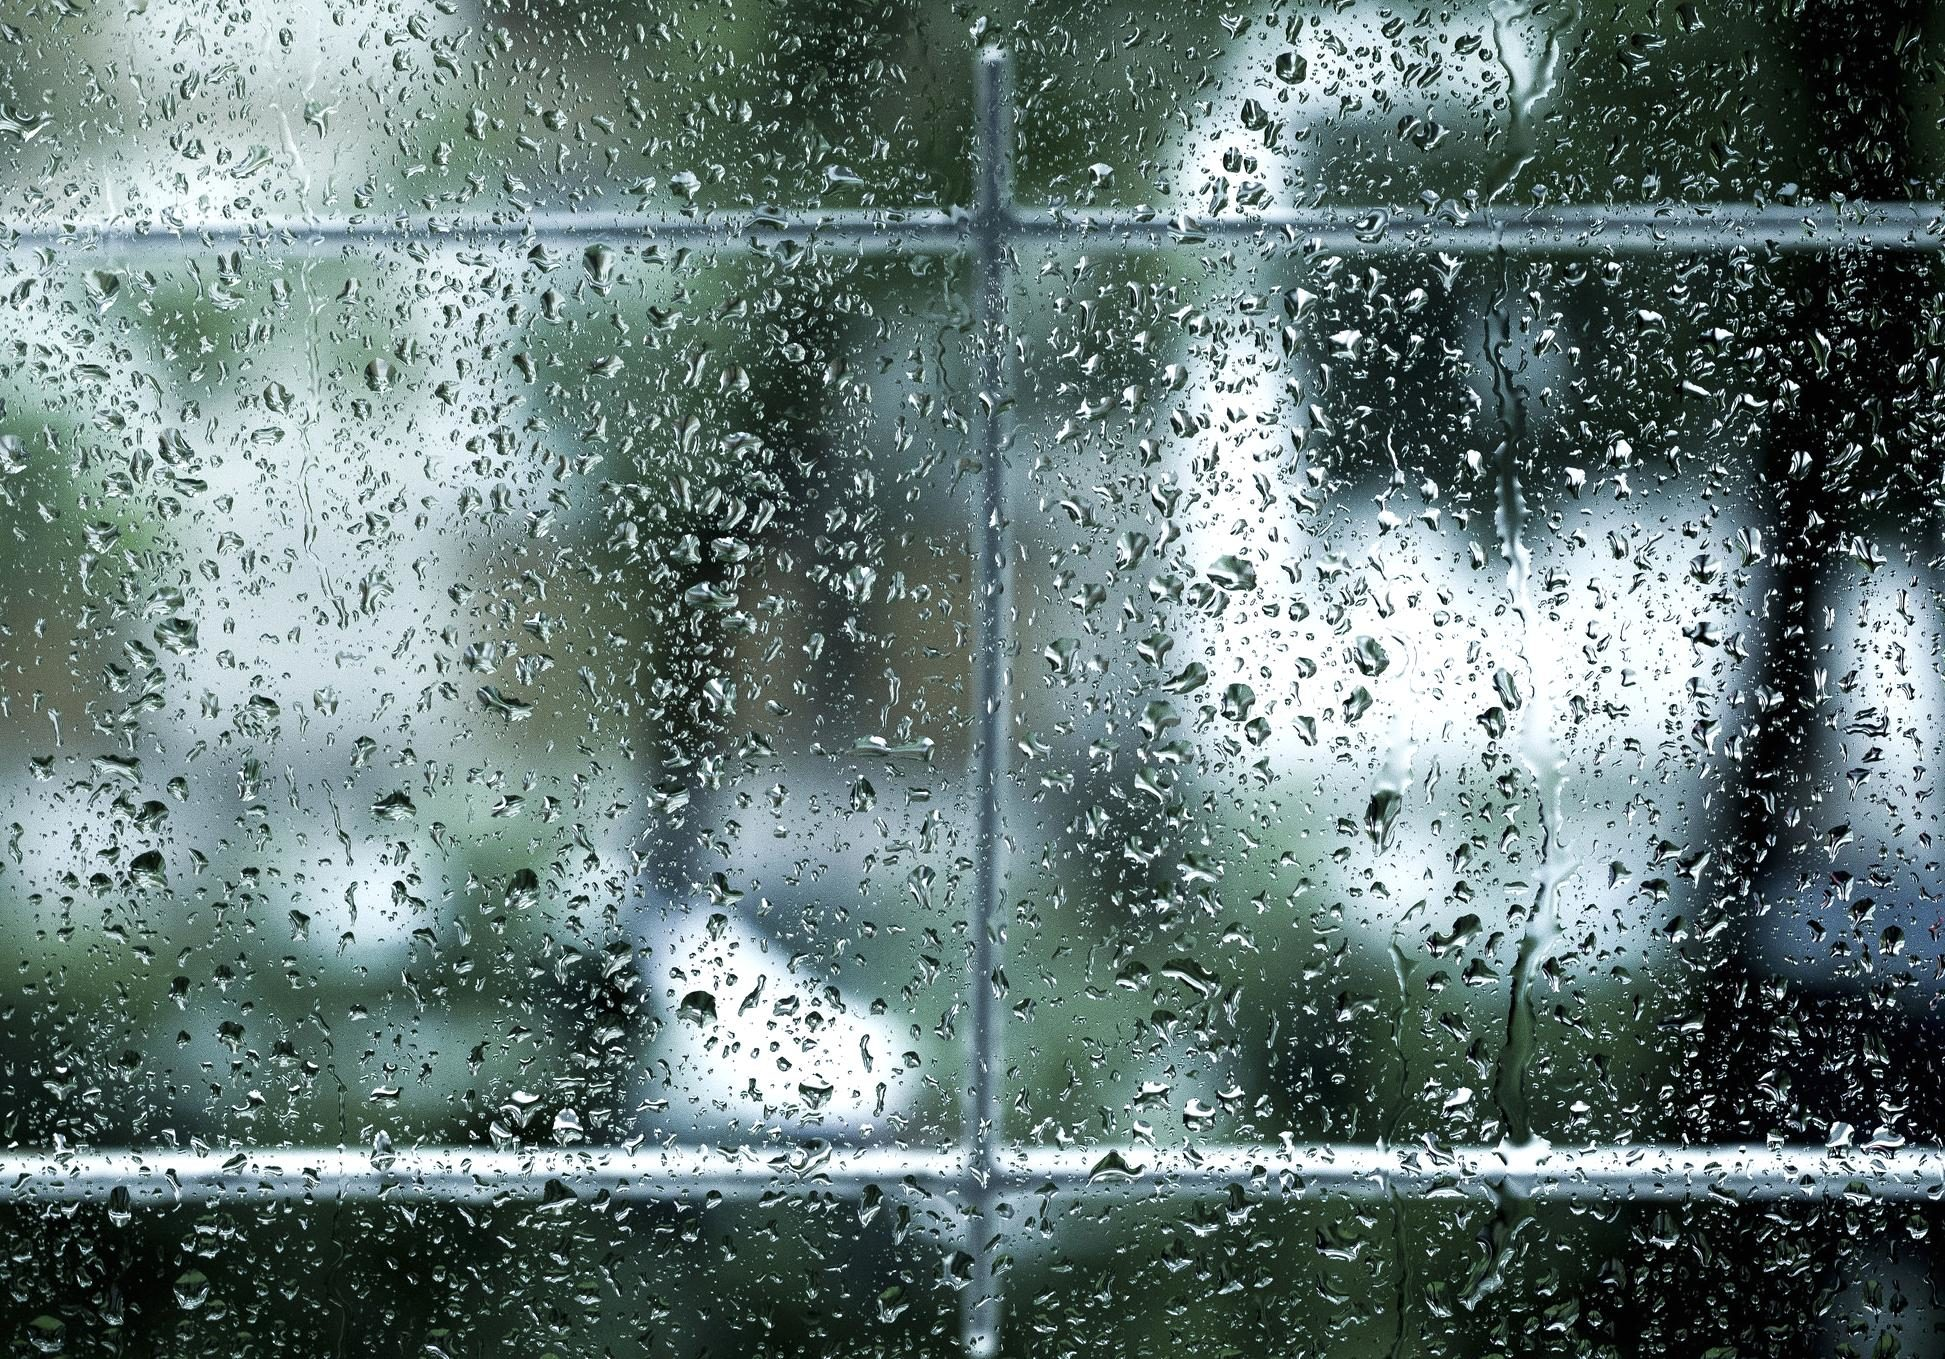 Free picture: rain, wet, window, texture, wall, urban